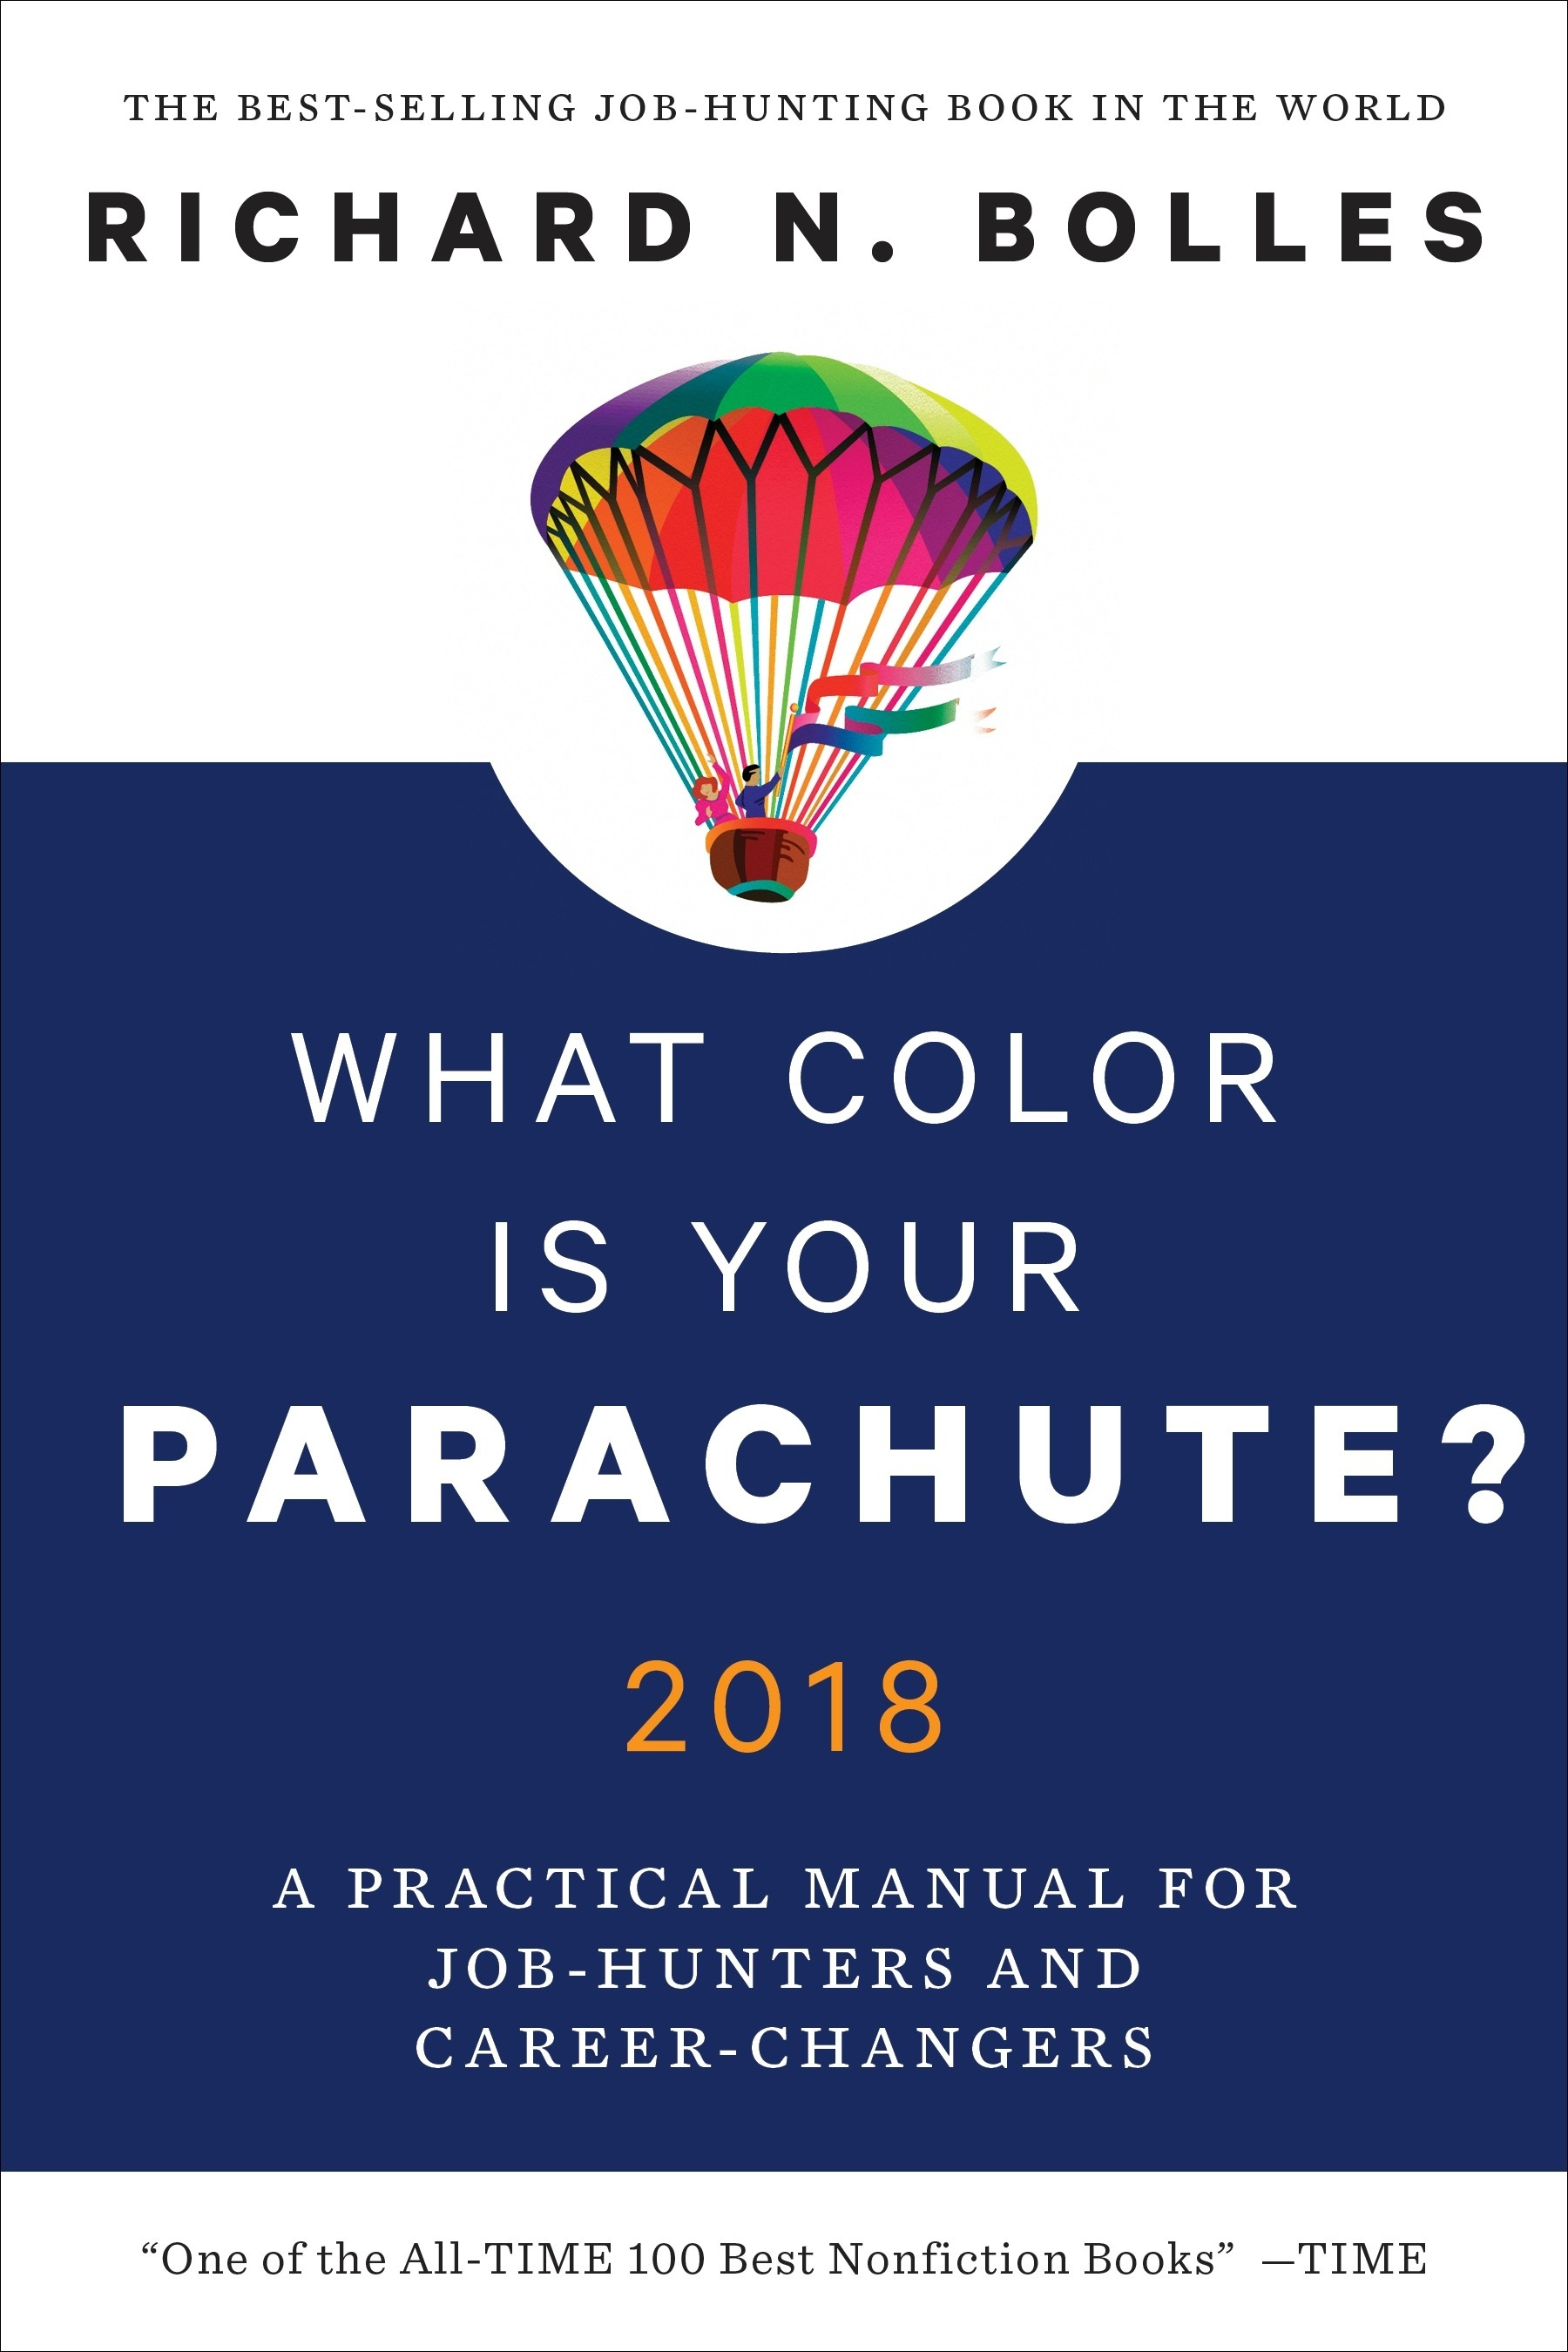 what color is your parachute richard bolles.jpg